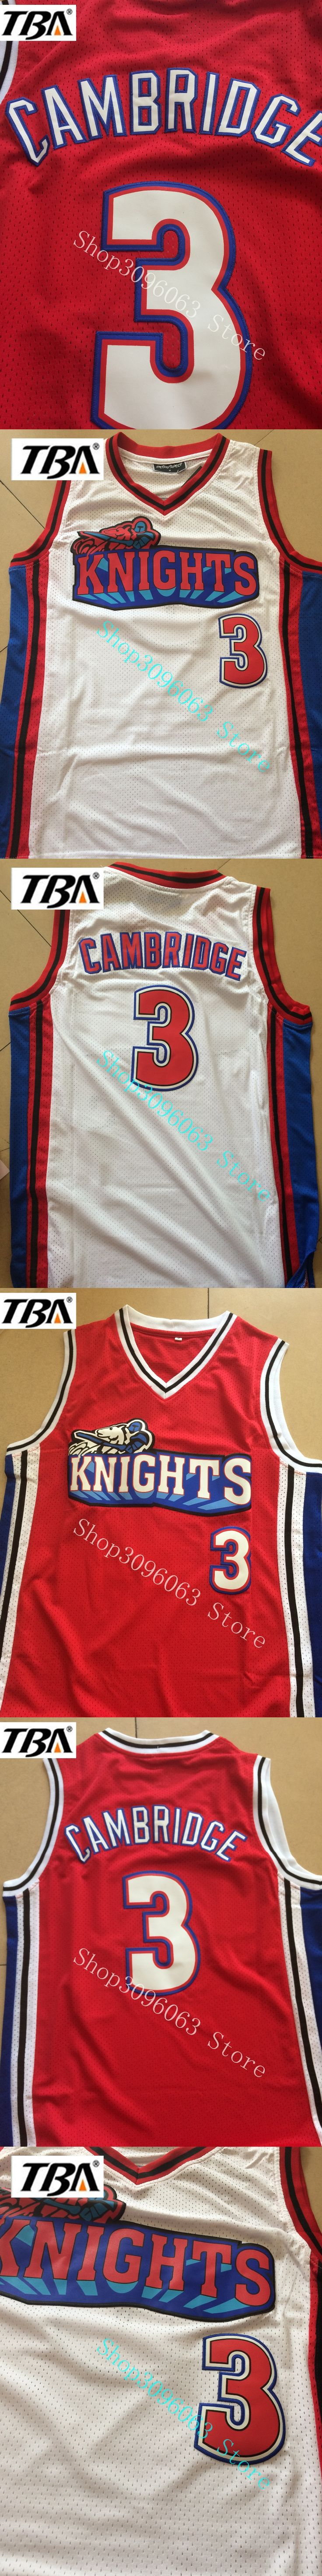 NEW Like Mike Movie Knights #3 Calvin Cambridge Throwback Basketball Jersey Embroidered Stitched White Free Shipping